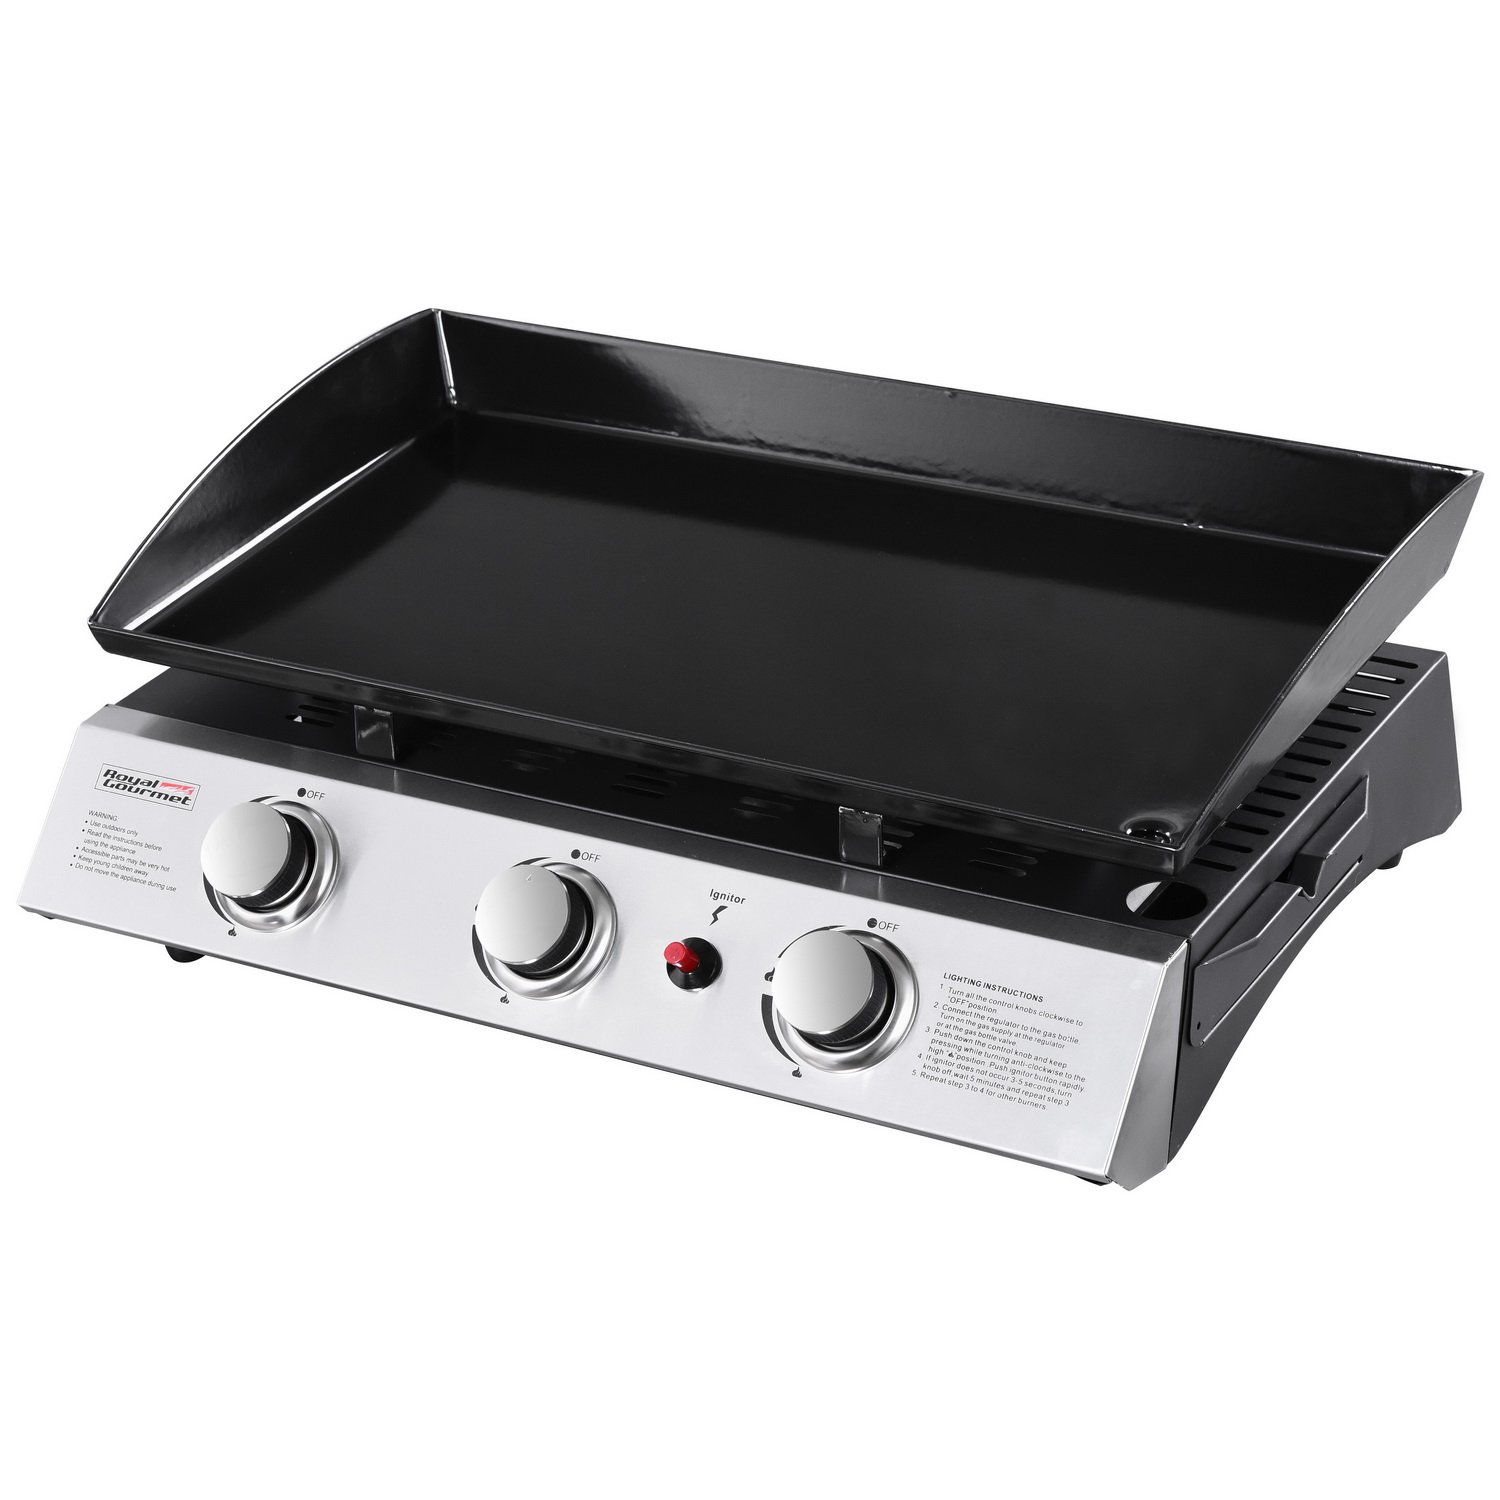 Amazon.com : Royal Gourmet PD1300 Portable 3-Burner Propane Gas ...